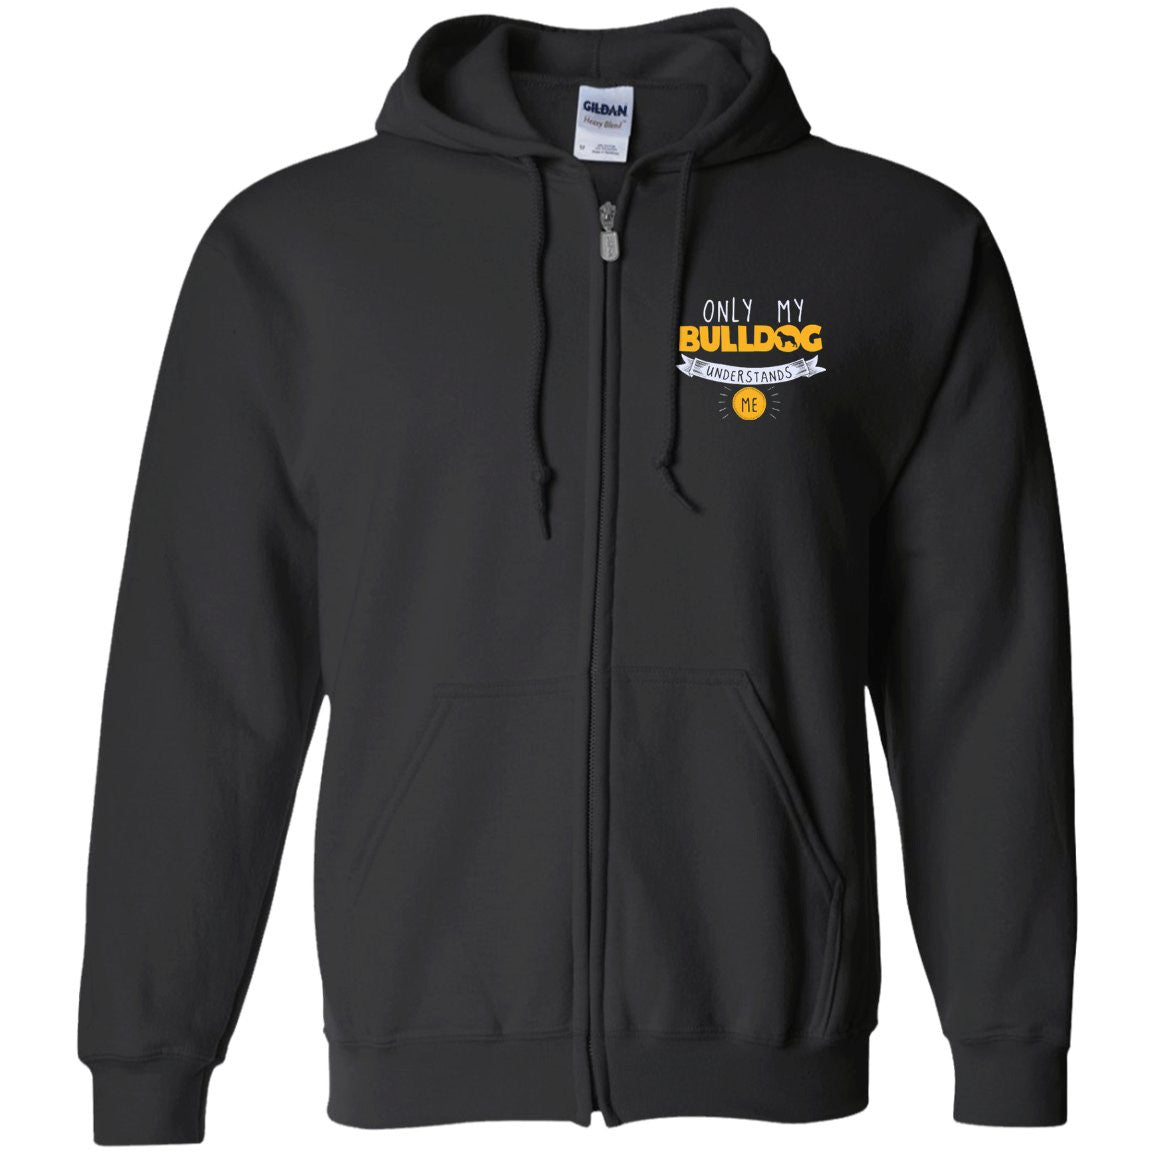 Bulldog - Only My Bulldog Understands Me - Embroidered Zip Up Hooded Sweatshirt